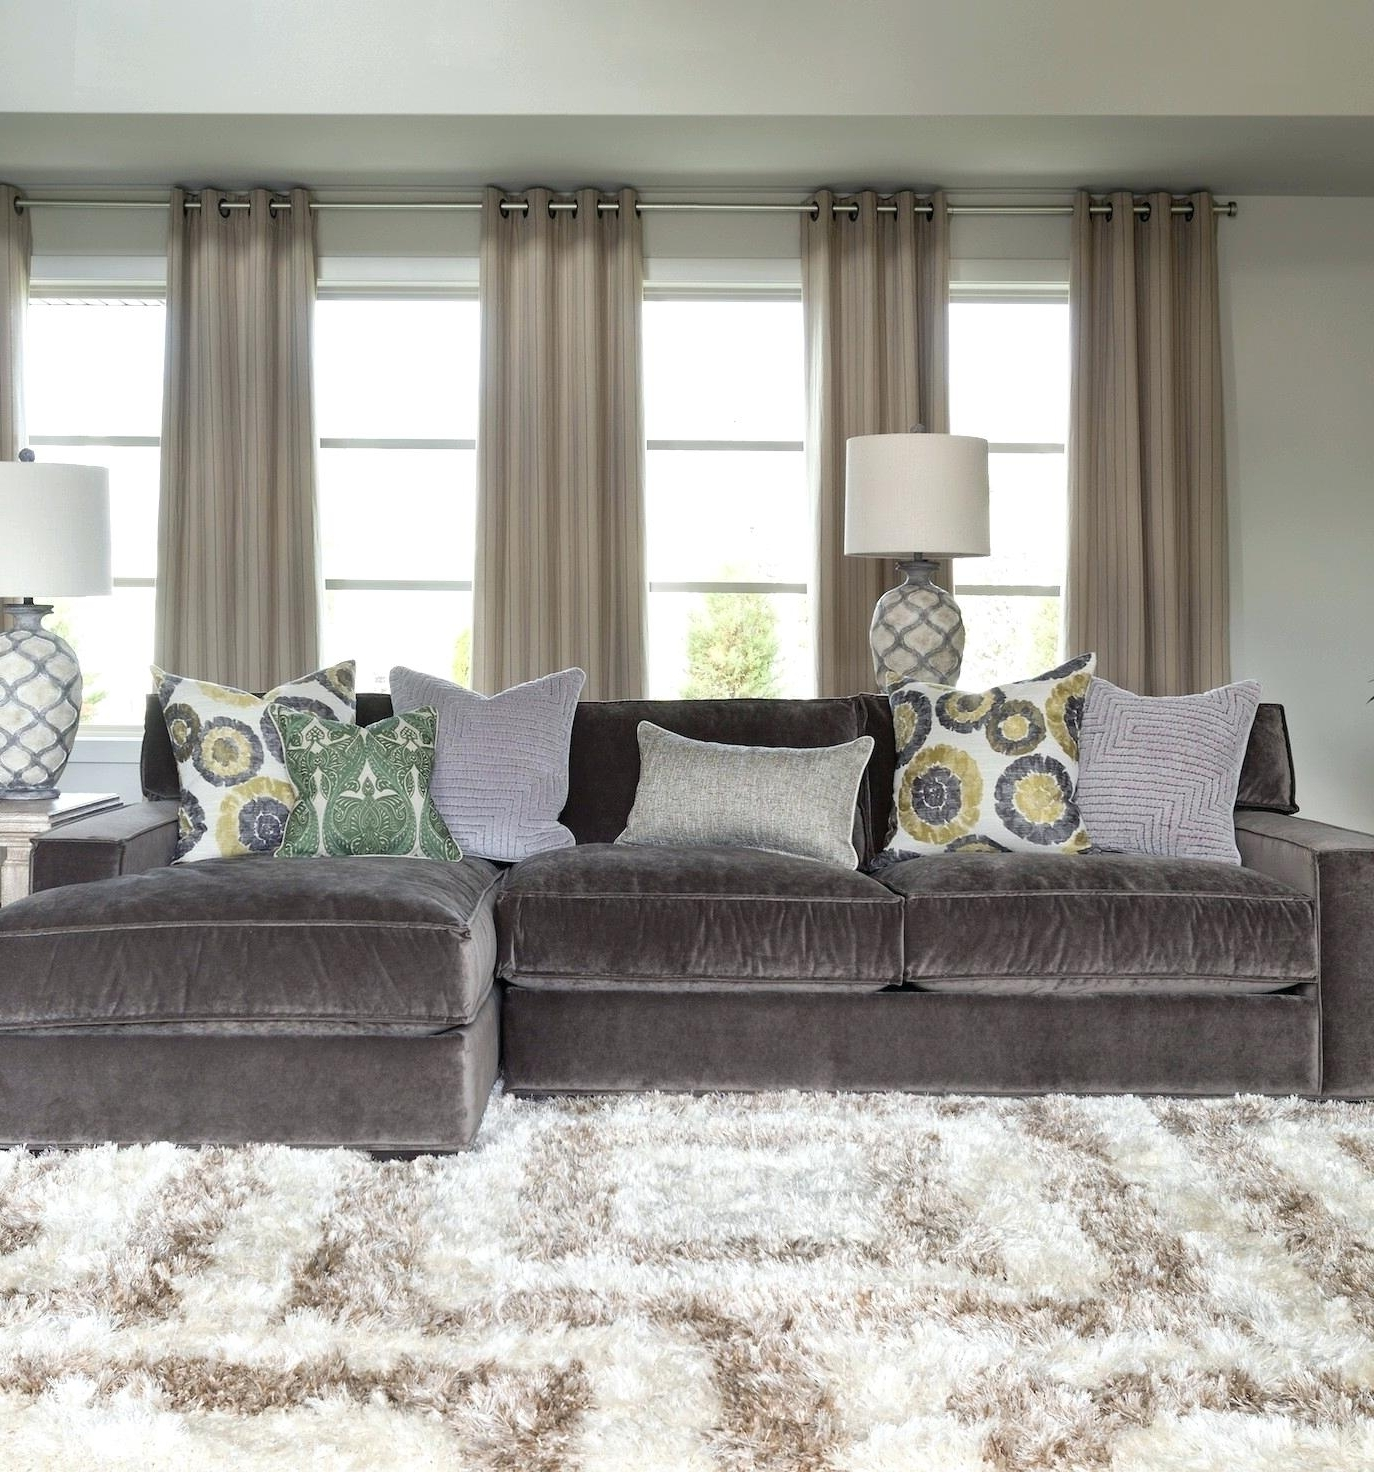 Stunning Restoration Hardware Sectional Ideas – Liltigertoo Pertaining To Well Liked Restoration Hardware Sectional Sofas (View 17 of 20)